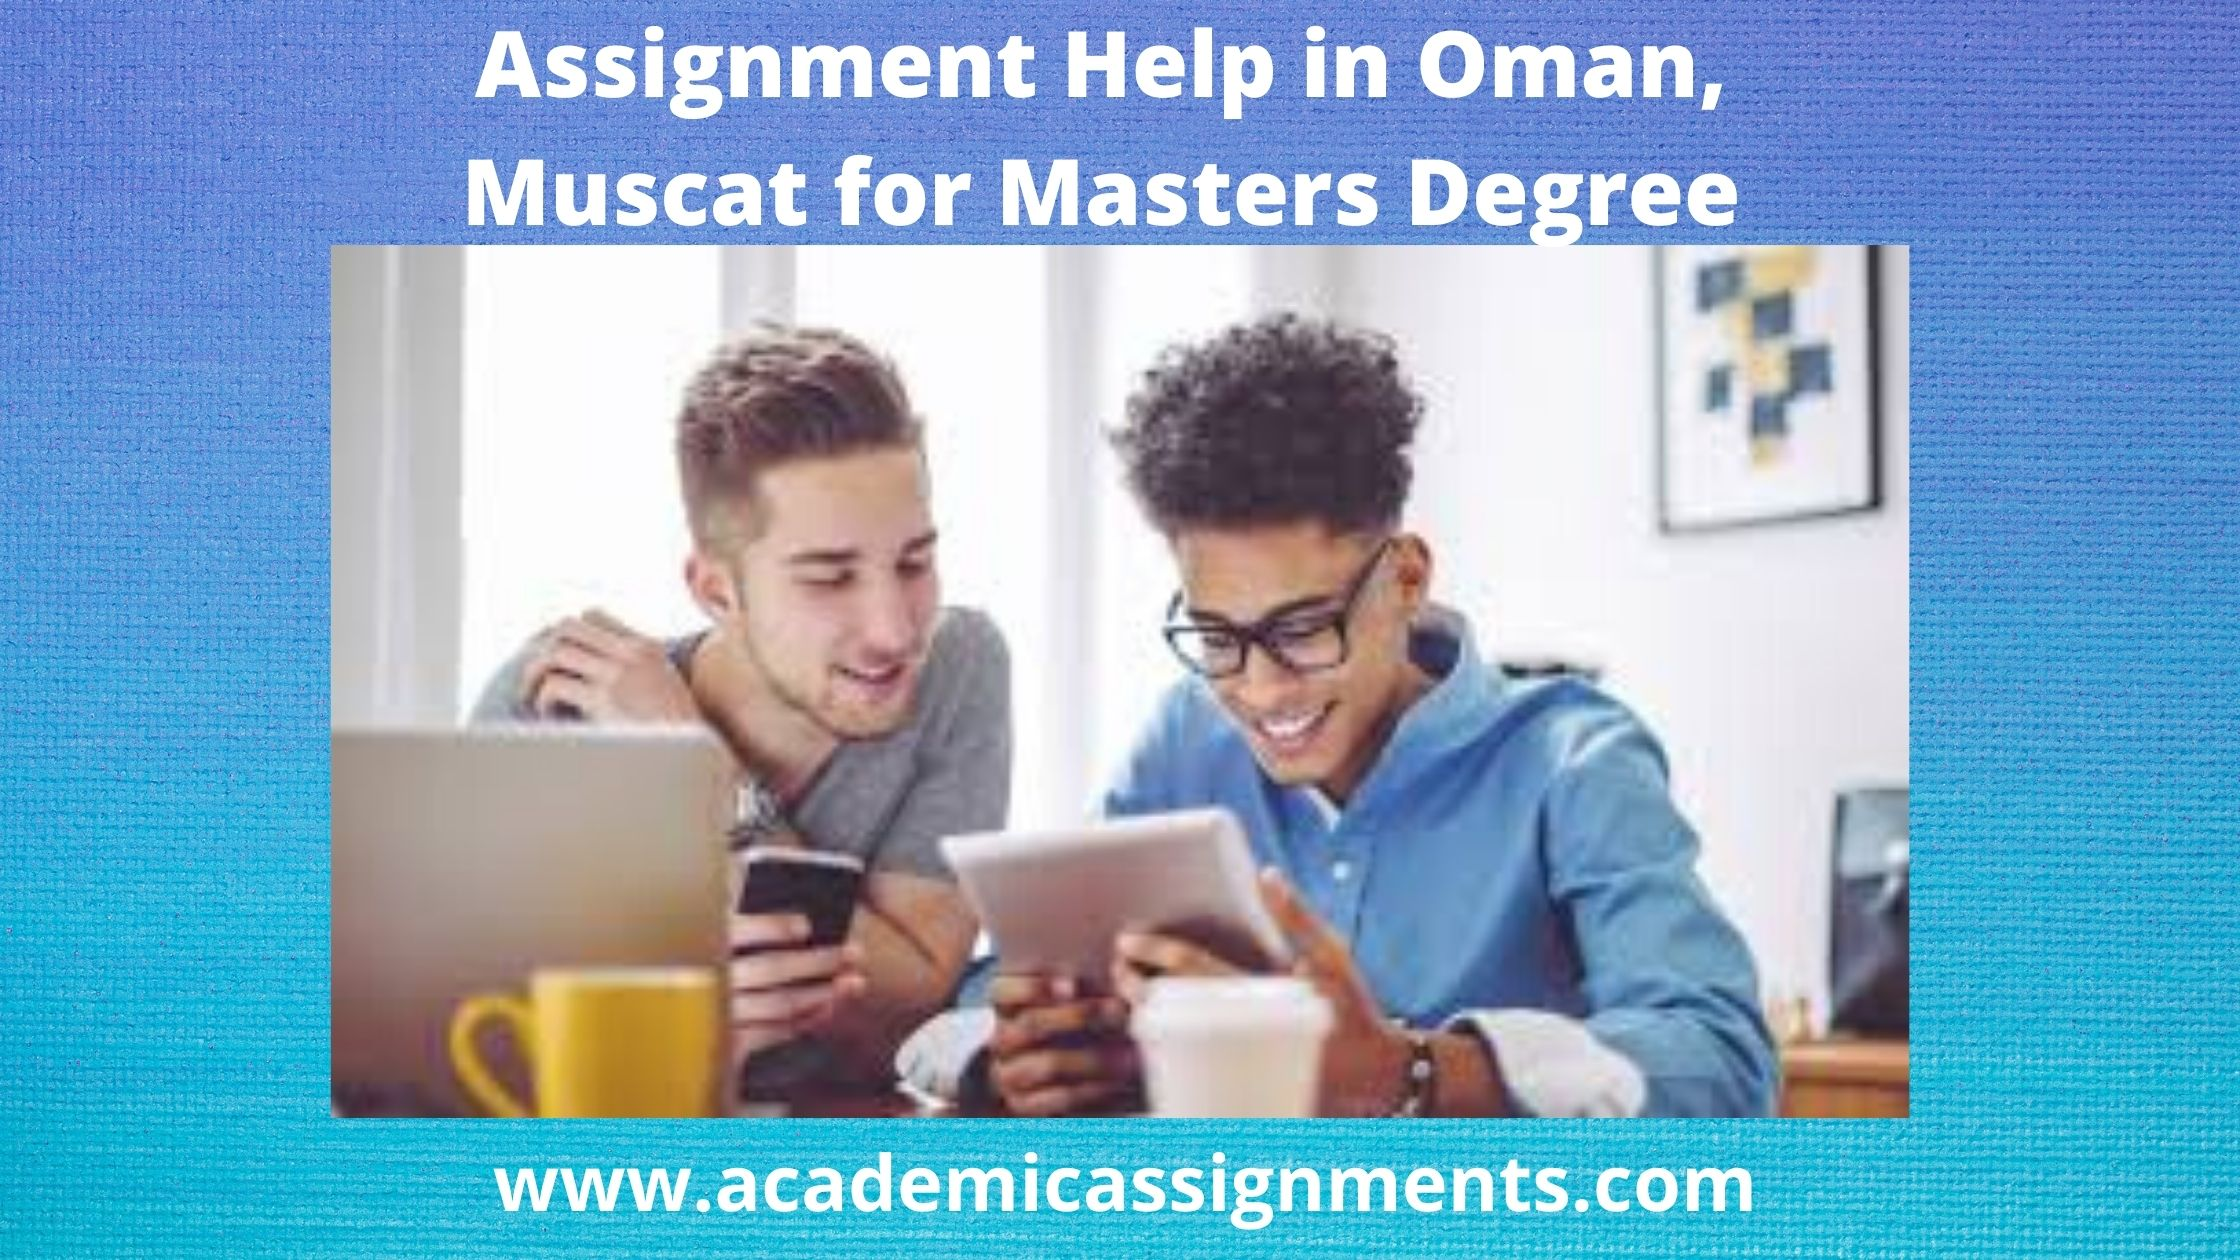 Assignment Help in Oman, Muscat for Masters Degree